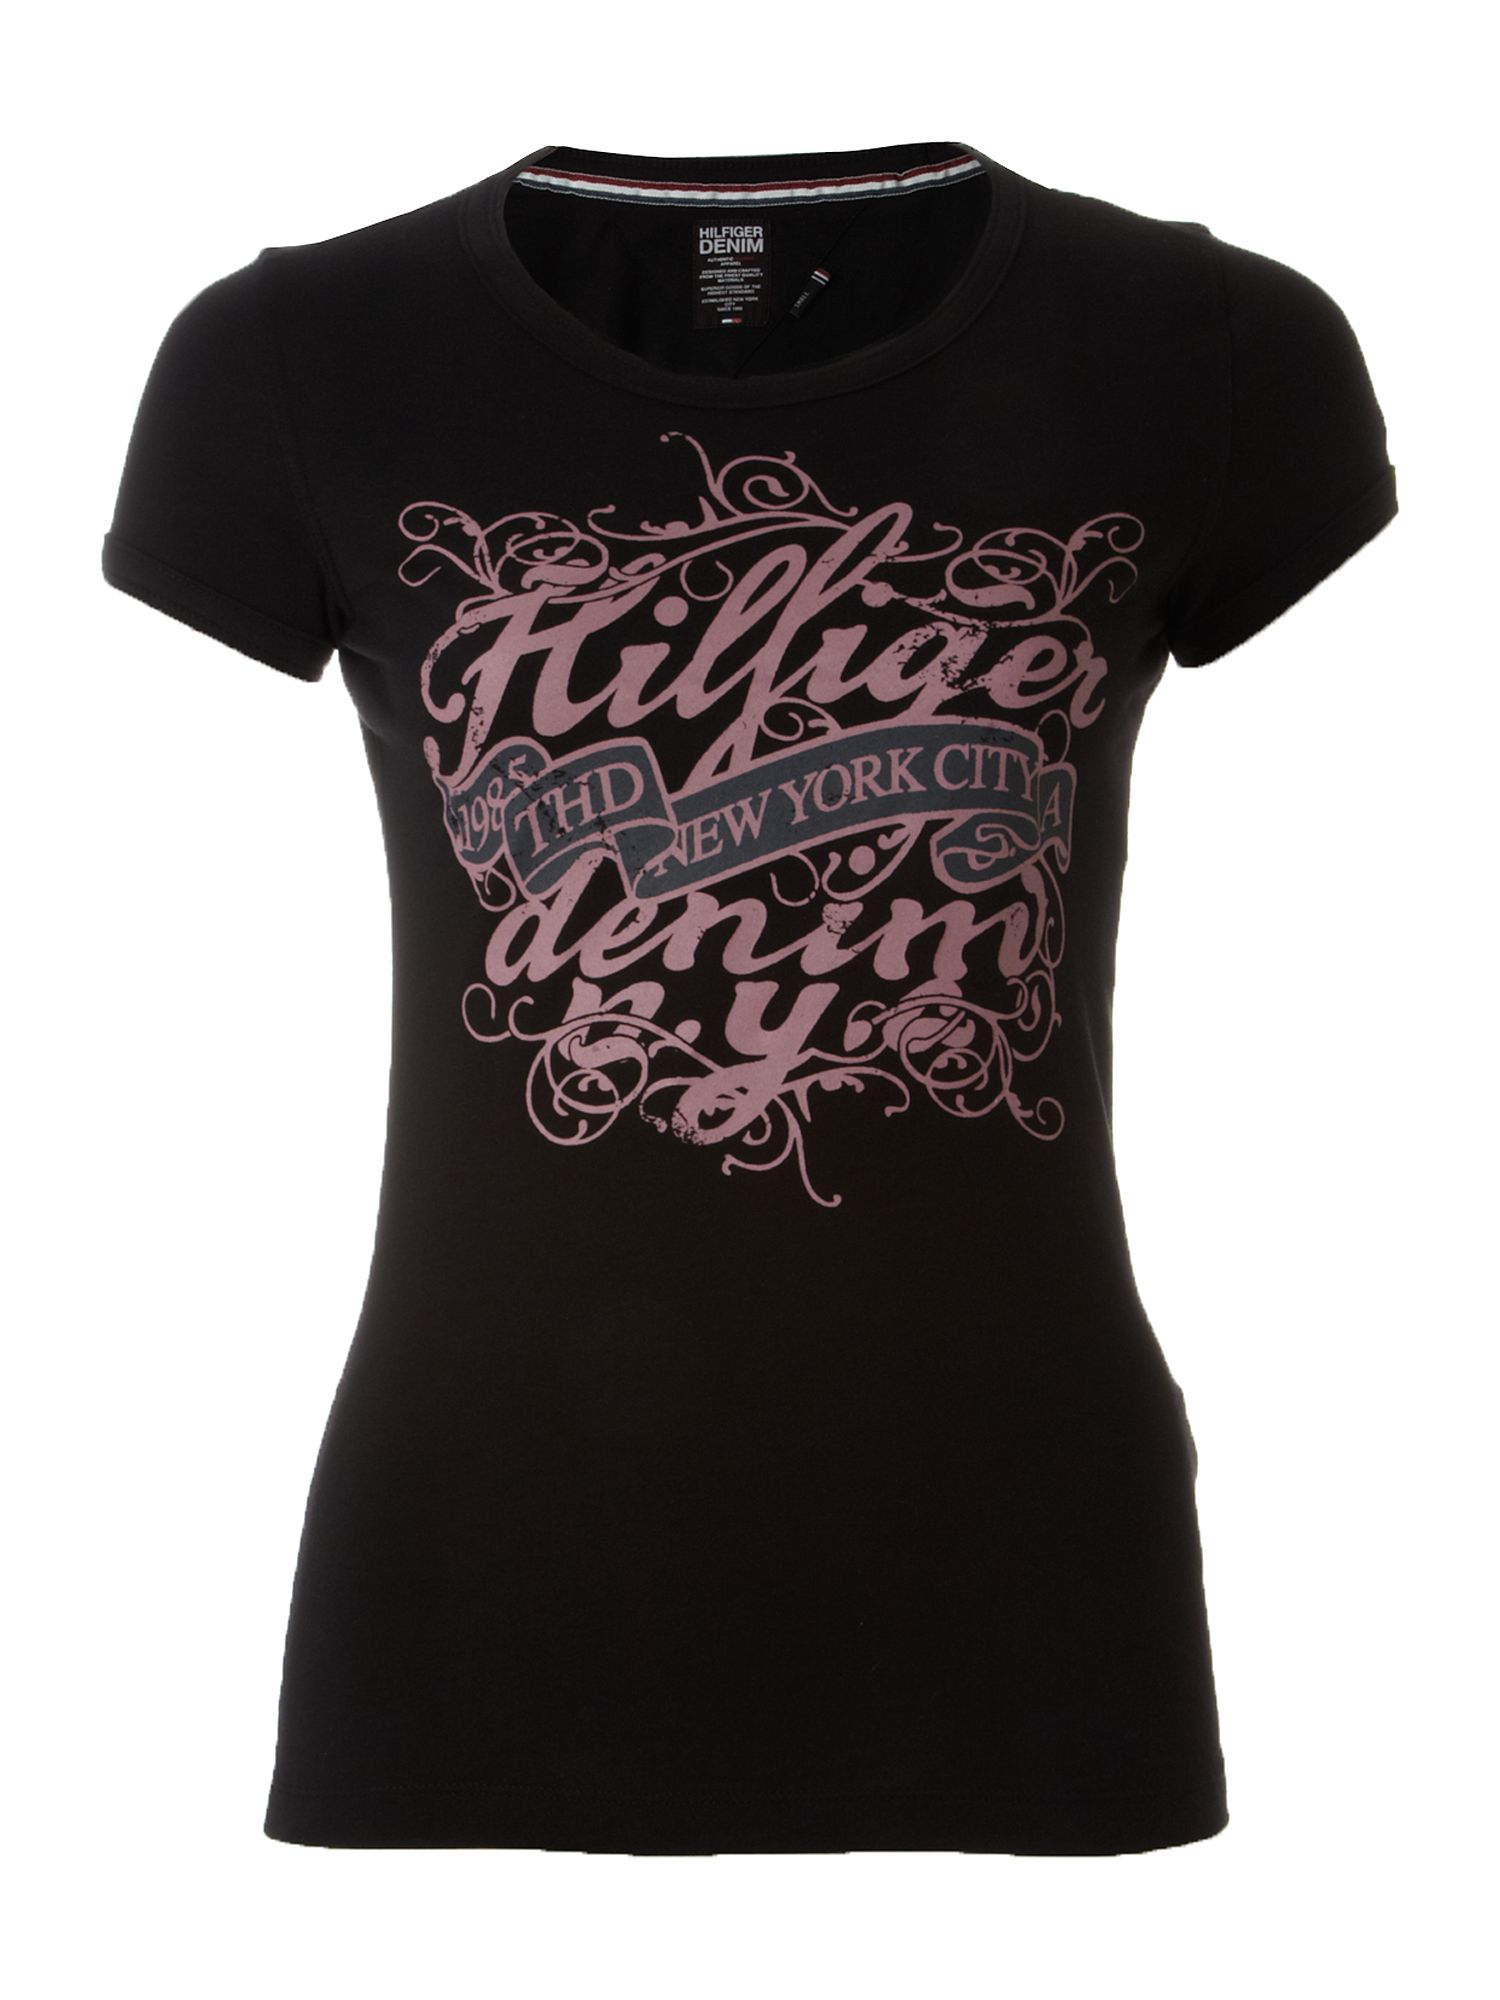 Tommy Hilfiger Lala cotton t-shirt Black product image